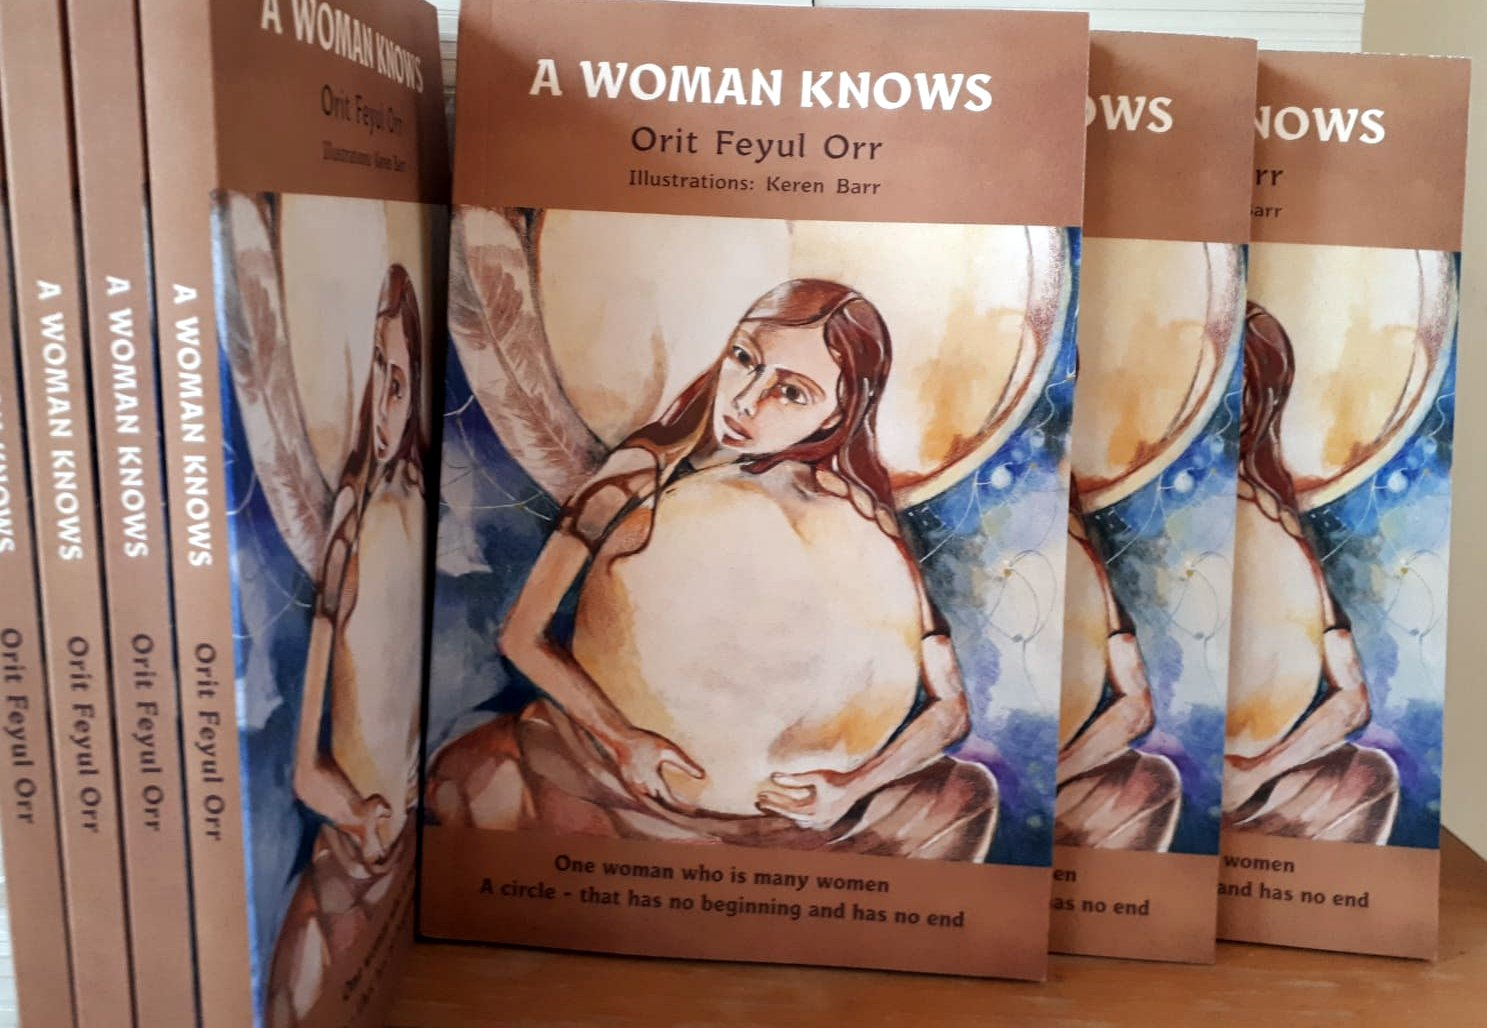 The Book A Woman Knows